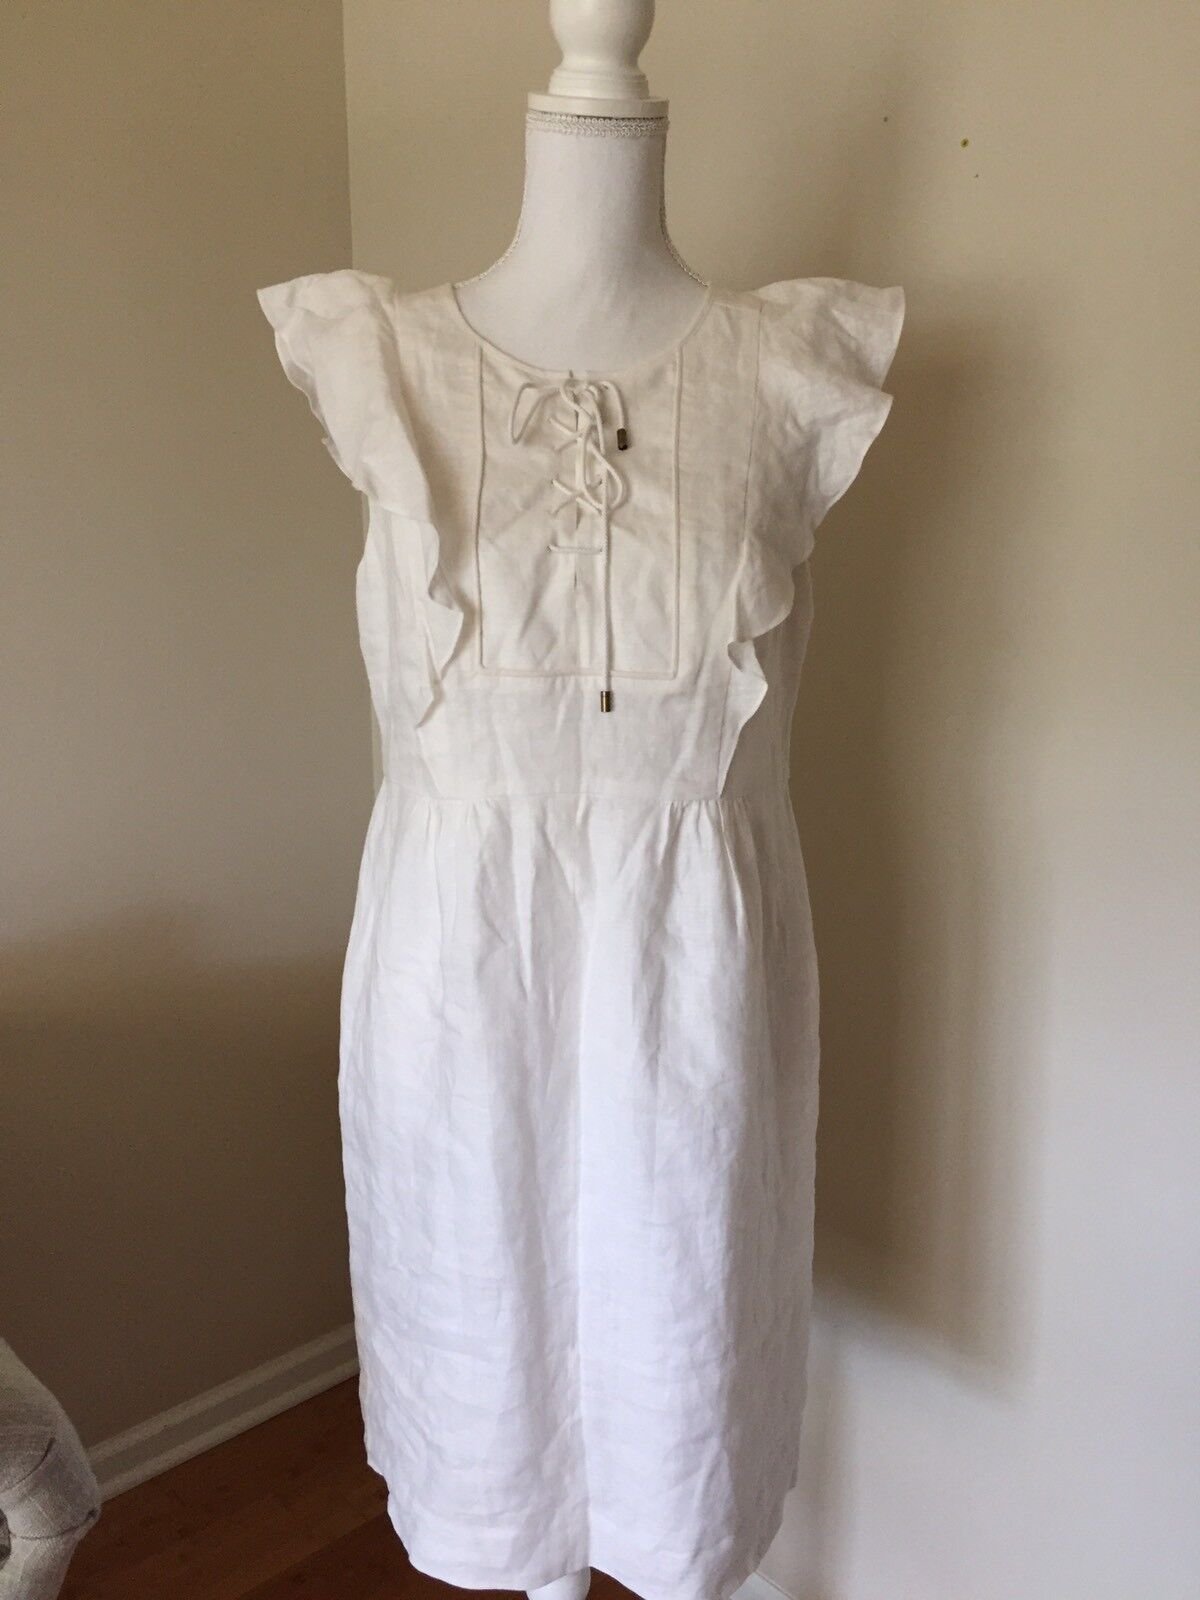 New J CREW Lace-Up Dress in Linen Ruffle Cap Sleeve Size 6 White  148 A5836